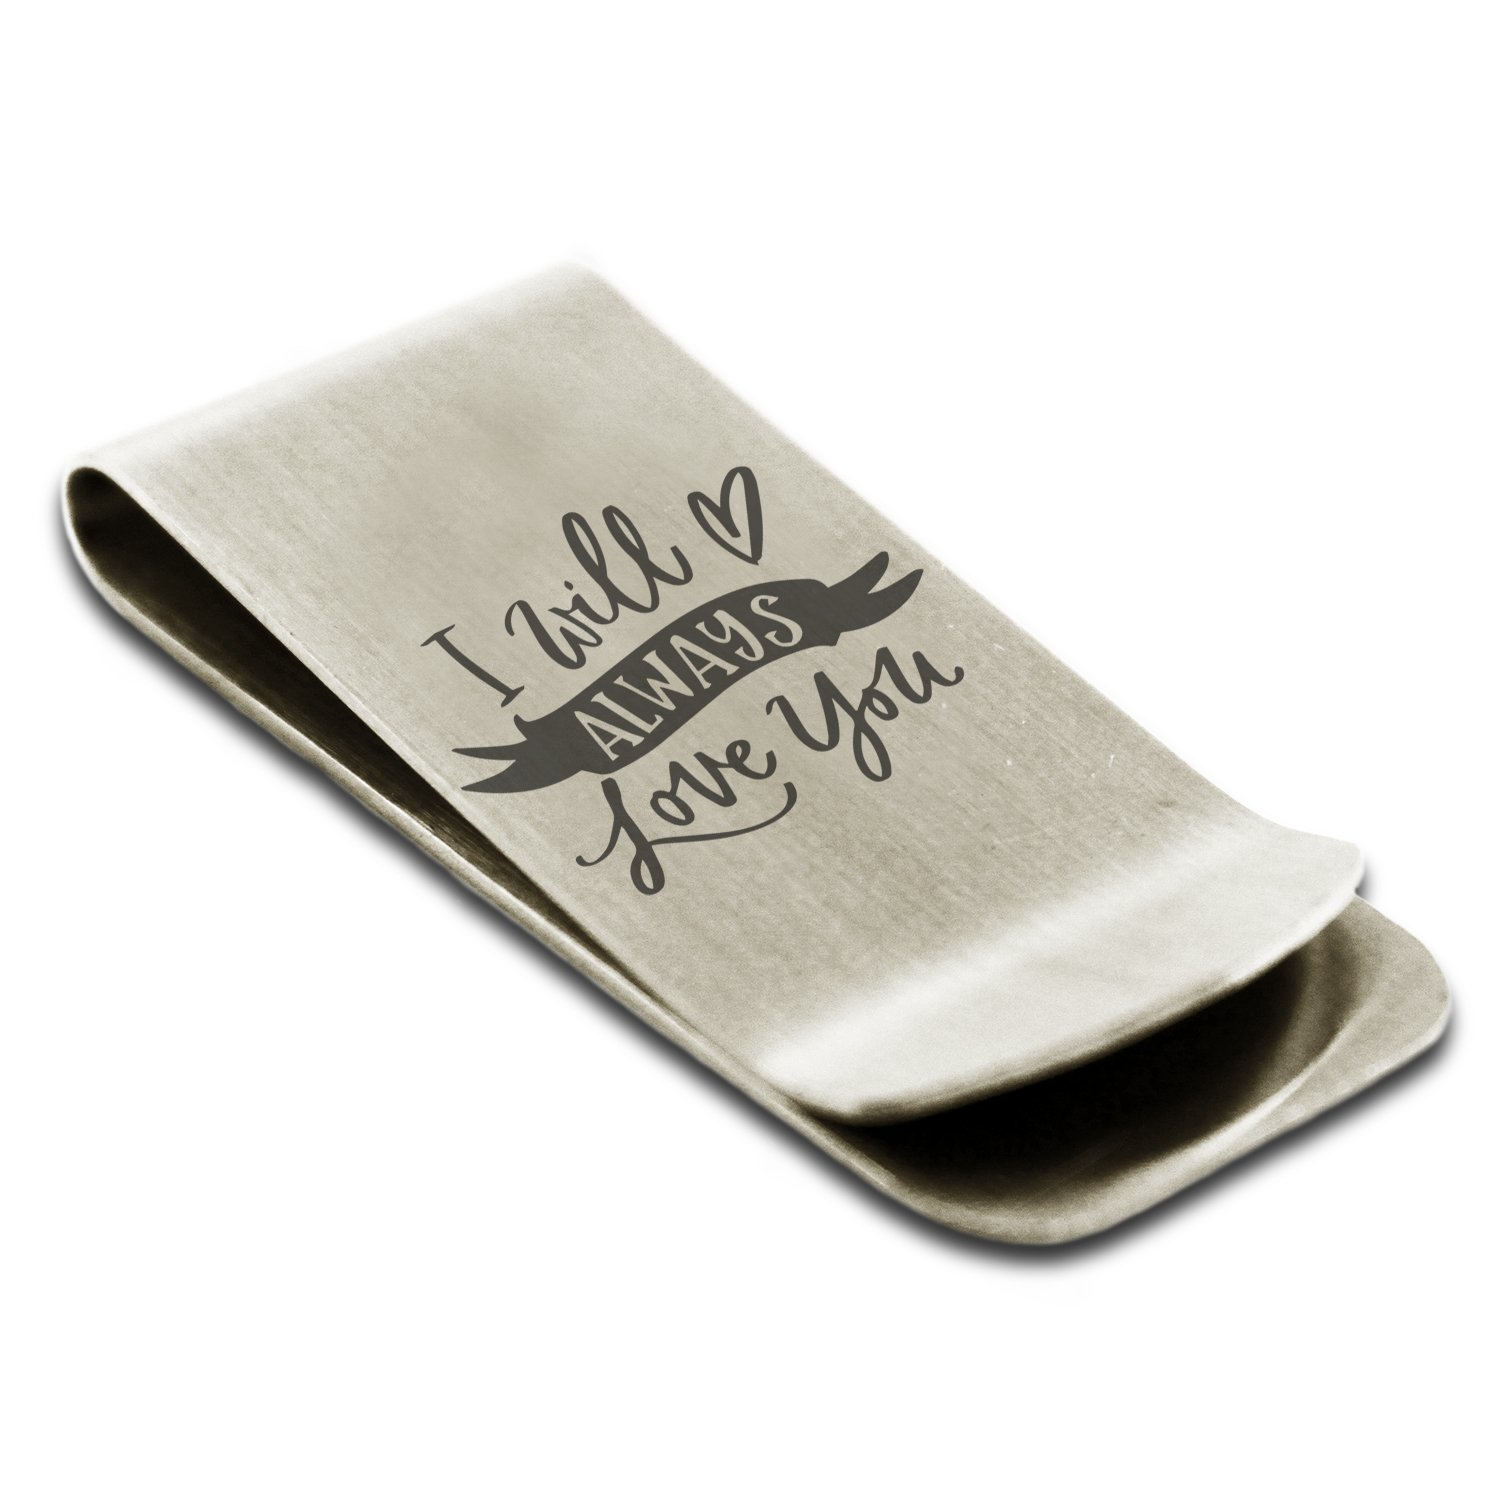 Stainless Steel I Will Always Love You Engraved Money Clip Credit Card Holder